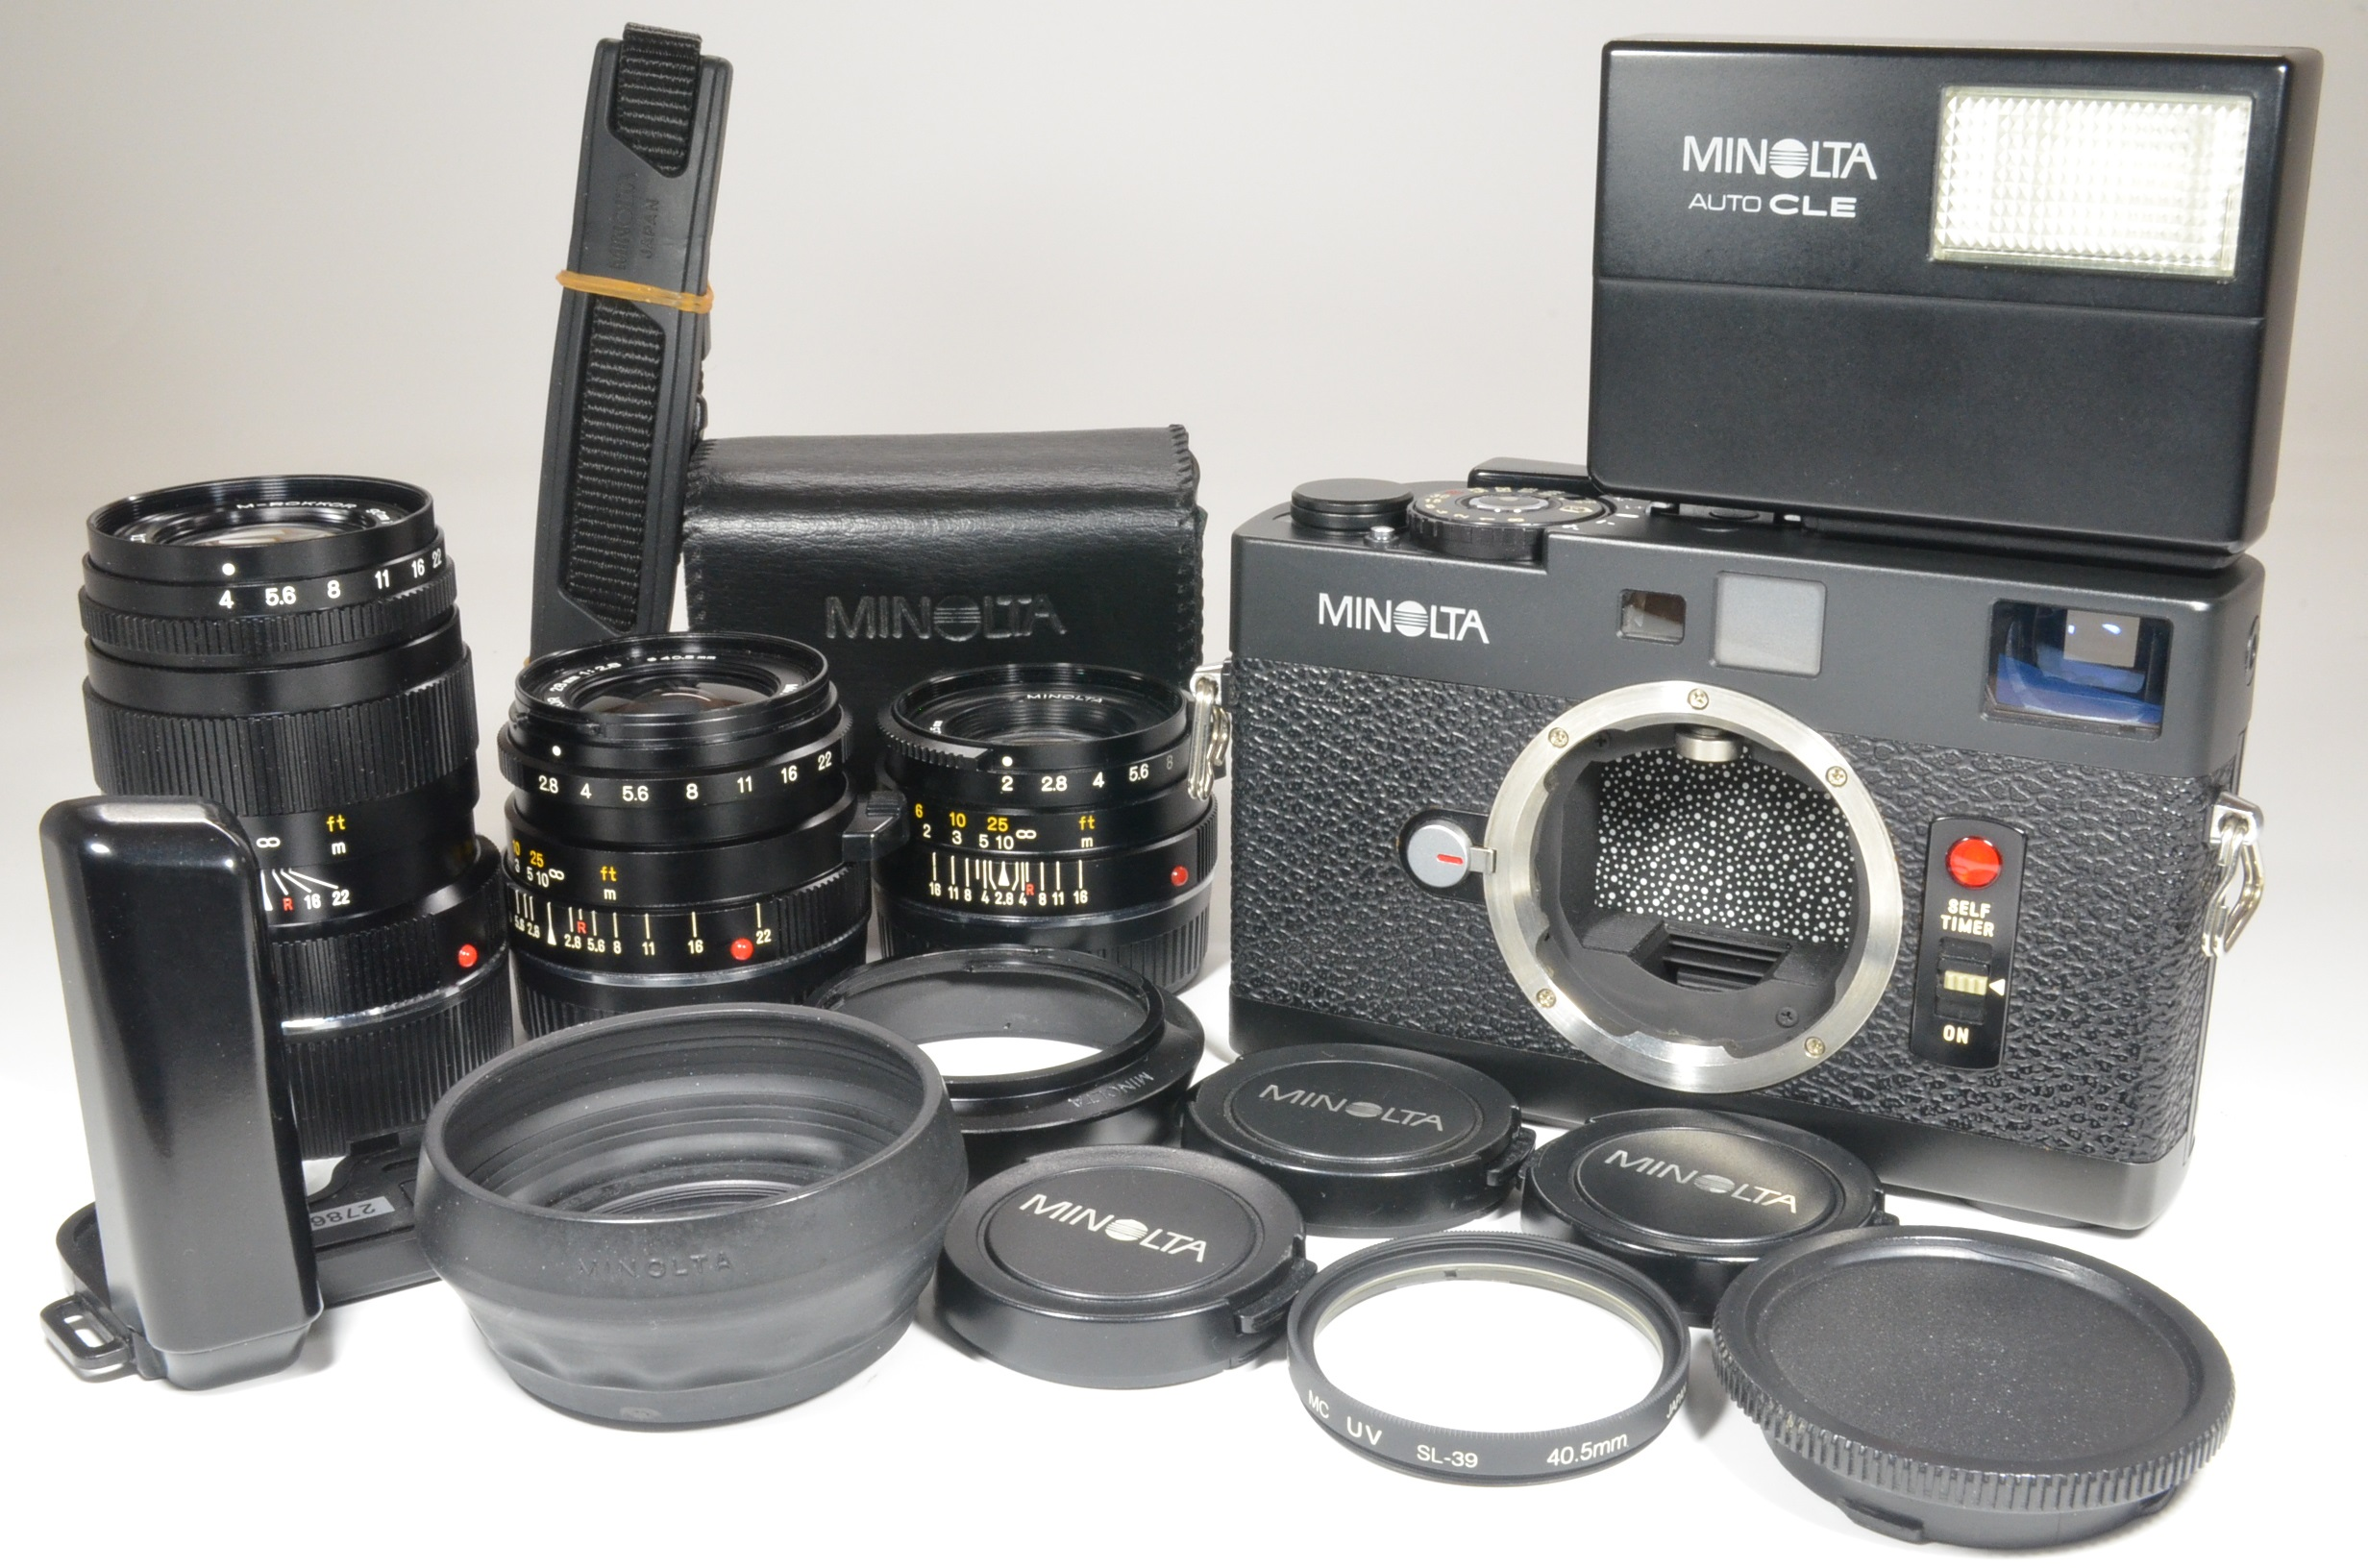 minolta cle film camera with m-rokkor 40mm, 28mm, 90mm, flash, strap and grip